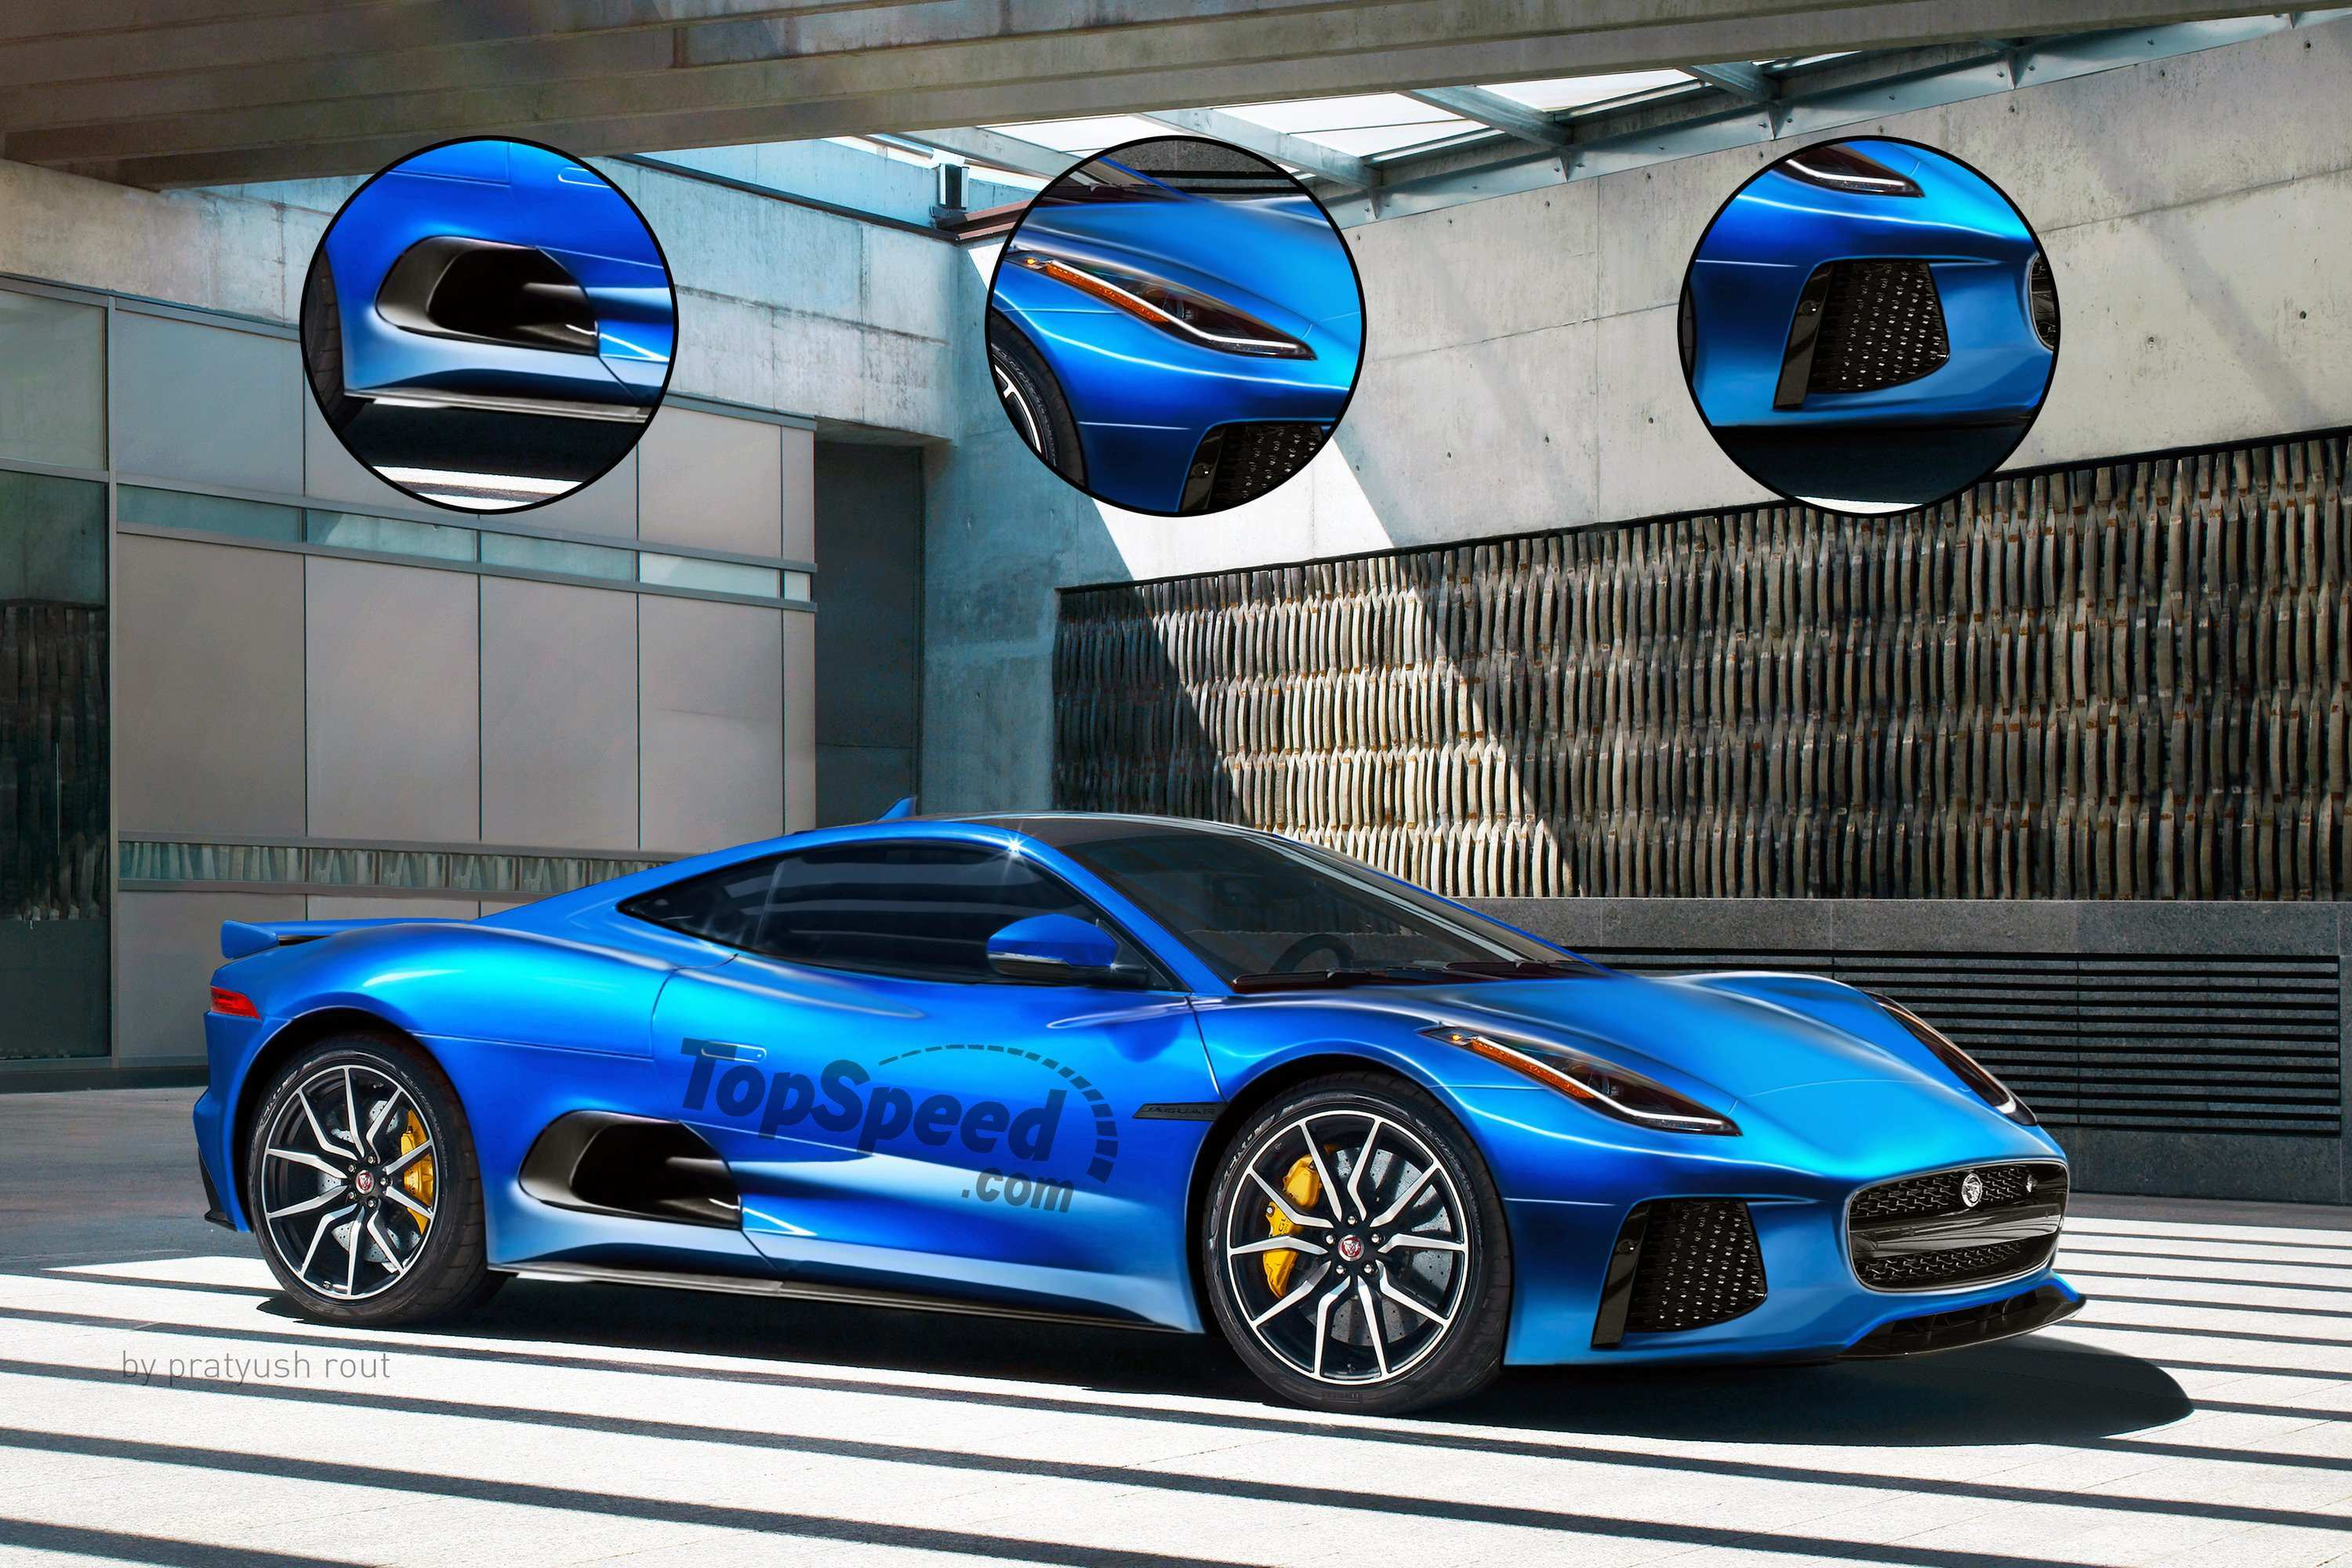 15 New Jaguar F Type 2020 Price and Review for Jaguar F Type 2020